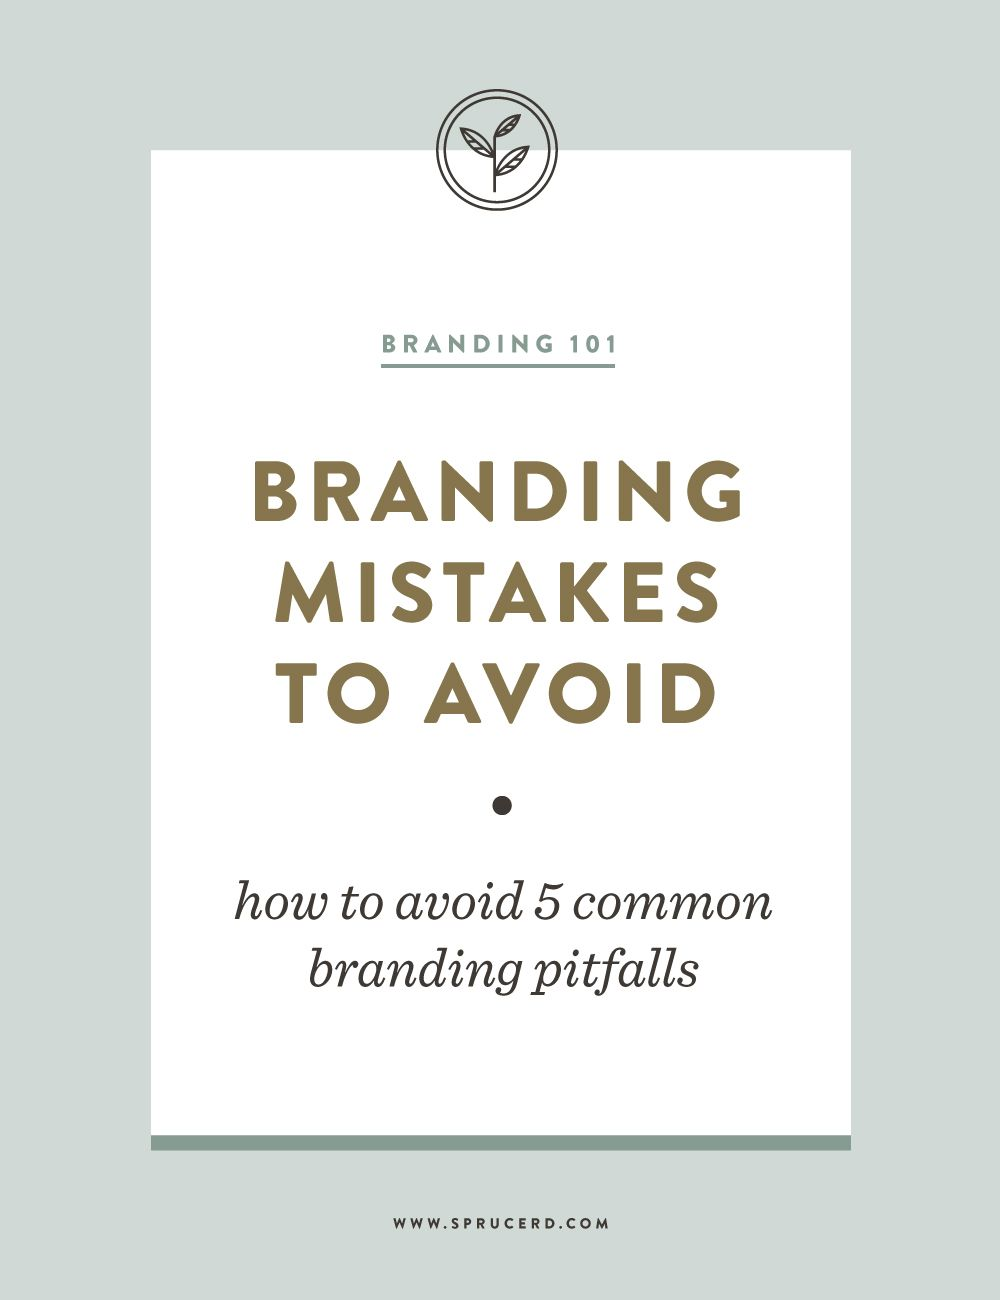 7 Design Mistakes To Avoid In Your Hall: Branding Mistakes To Avoid